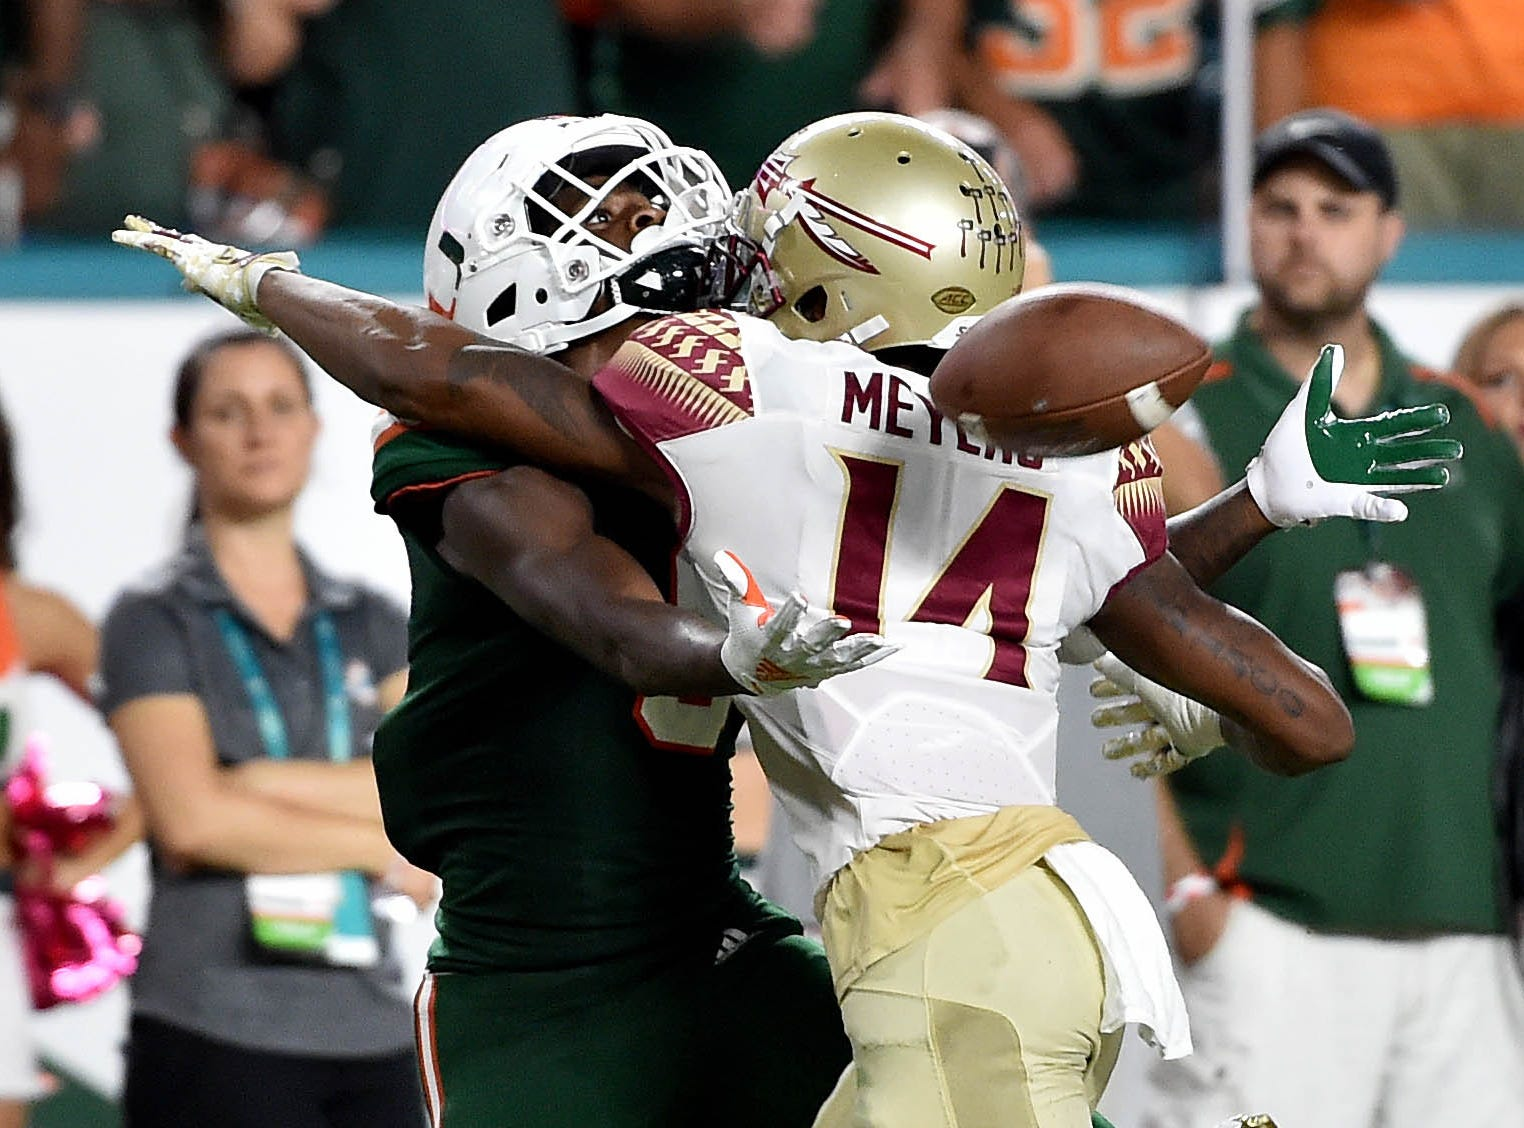 Oct 6, 2018; Miami Gardens, FL, USA; Miami Hurricanes wide receiver Dee Wiggins (8) is unable to make a catch as Florida State Seminoles defensive back Kyle Meyers (14) was called for pass interference during the second half at Hard Rock Stadium. Mandatory Credit: Steve Mitchell-USA TODAY Sports